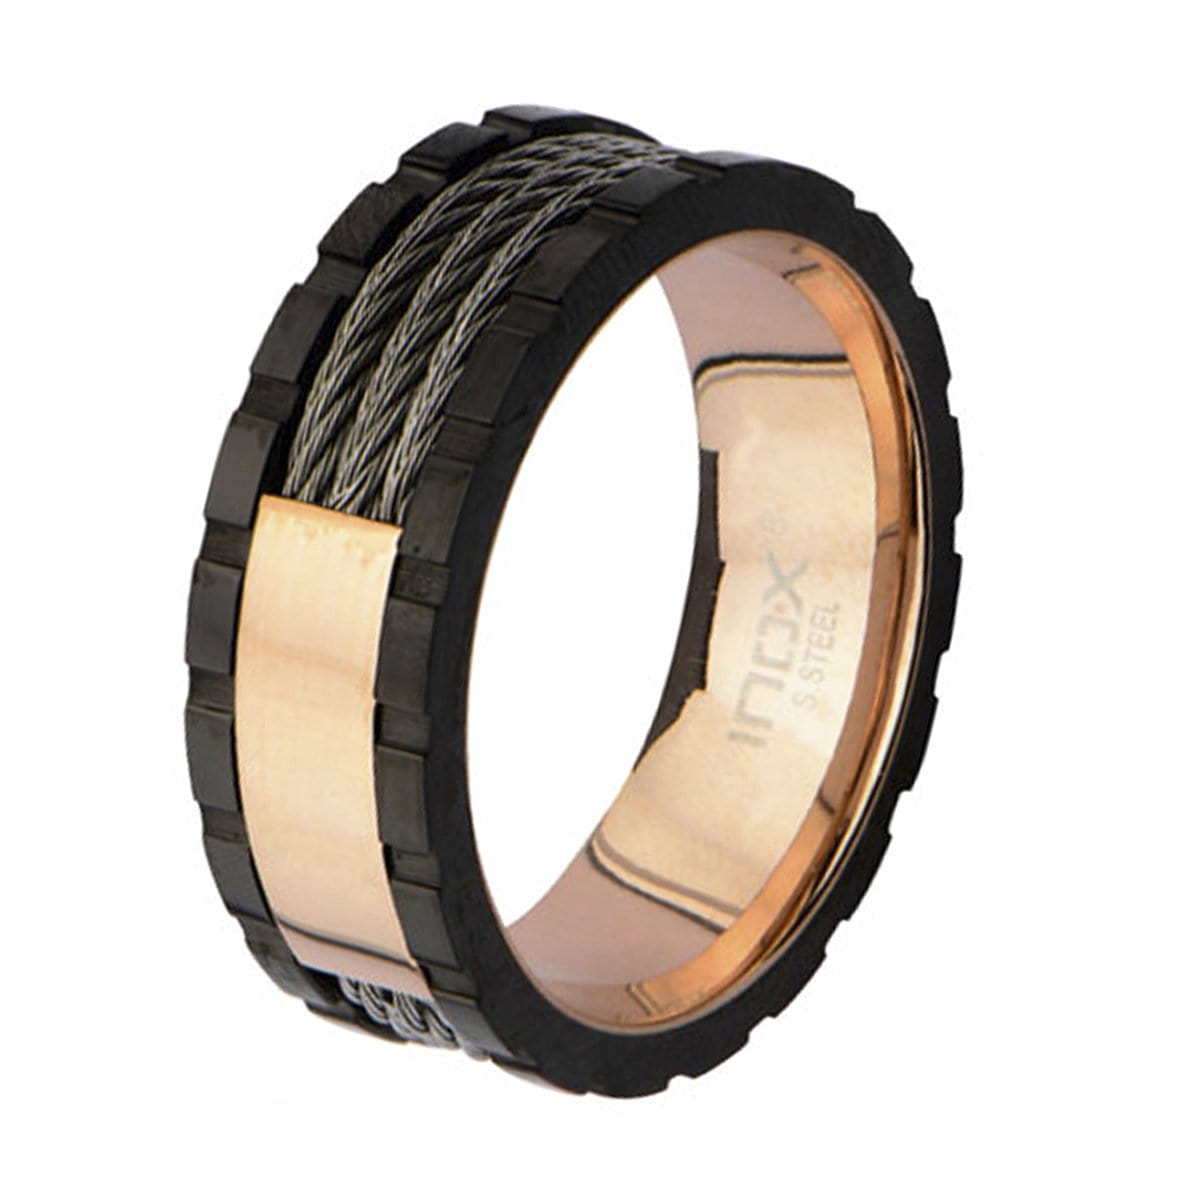 Rose Gold, Black, & Silver Stainless Steel Engraveable Cable Ring - Inox Jewelry India